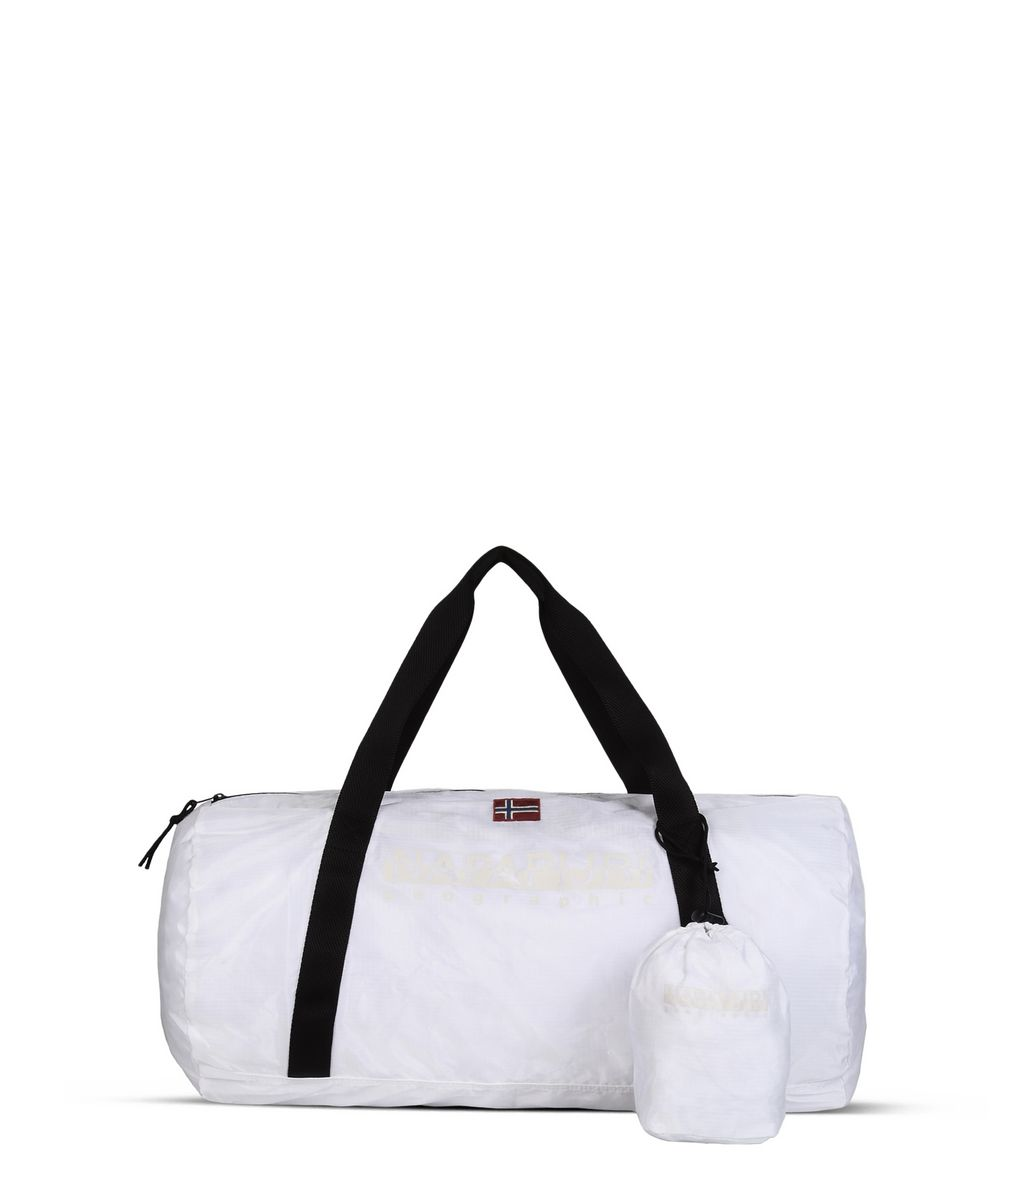 NAPAPIJRI BERING GYM PACK 48LT  TRAVEL BAG,BRIGHT WHITE